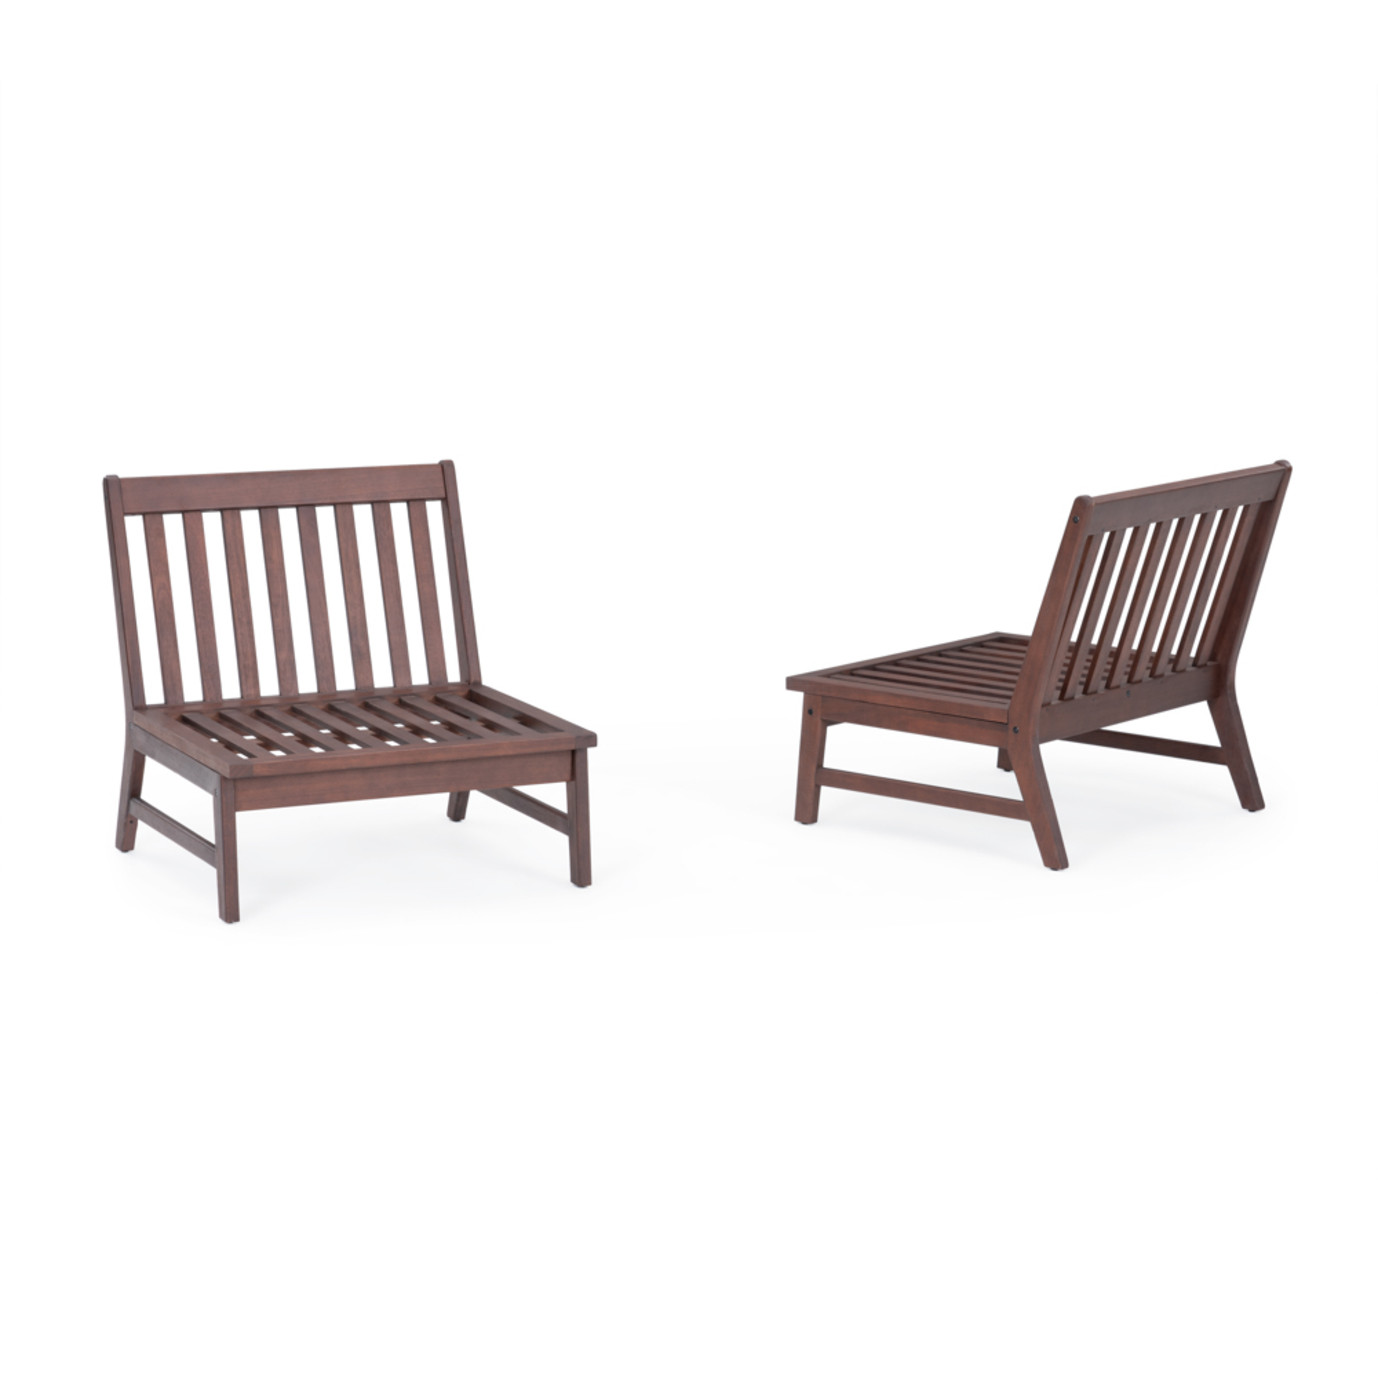 Vaughn Armless Chairs - Sunset Red